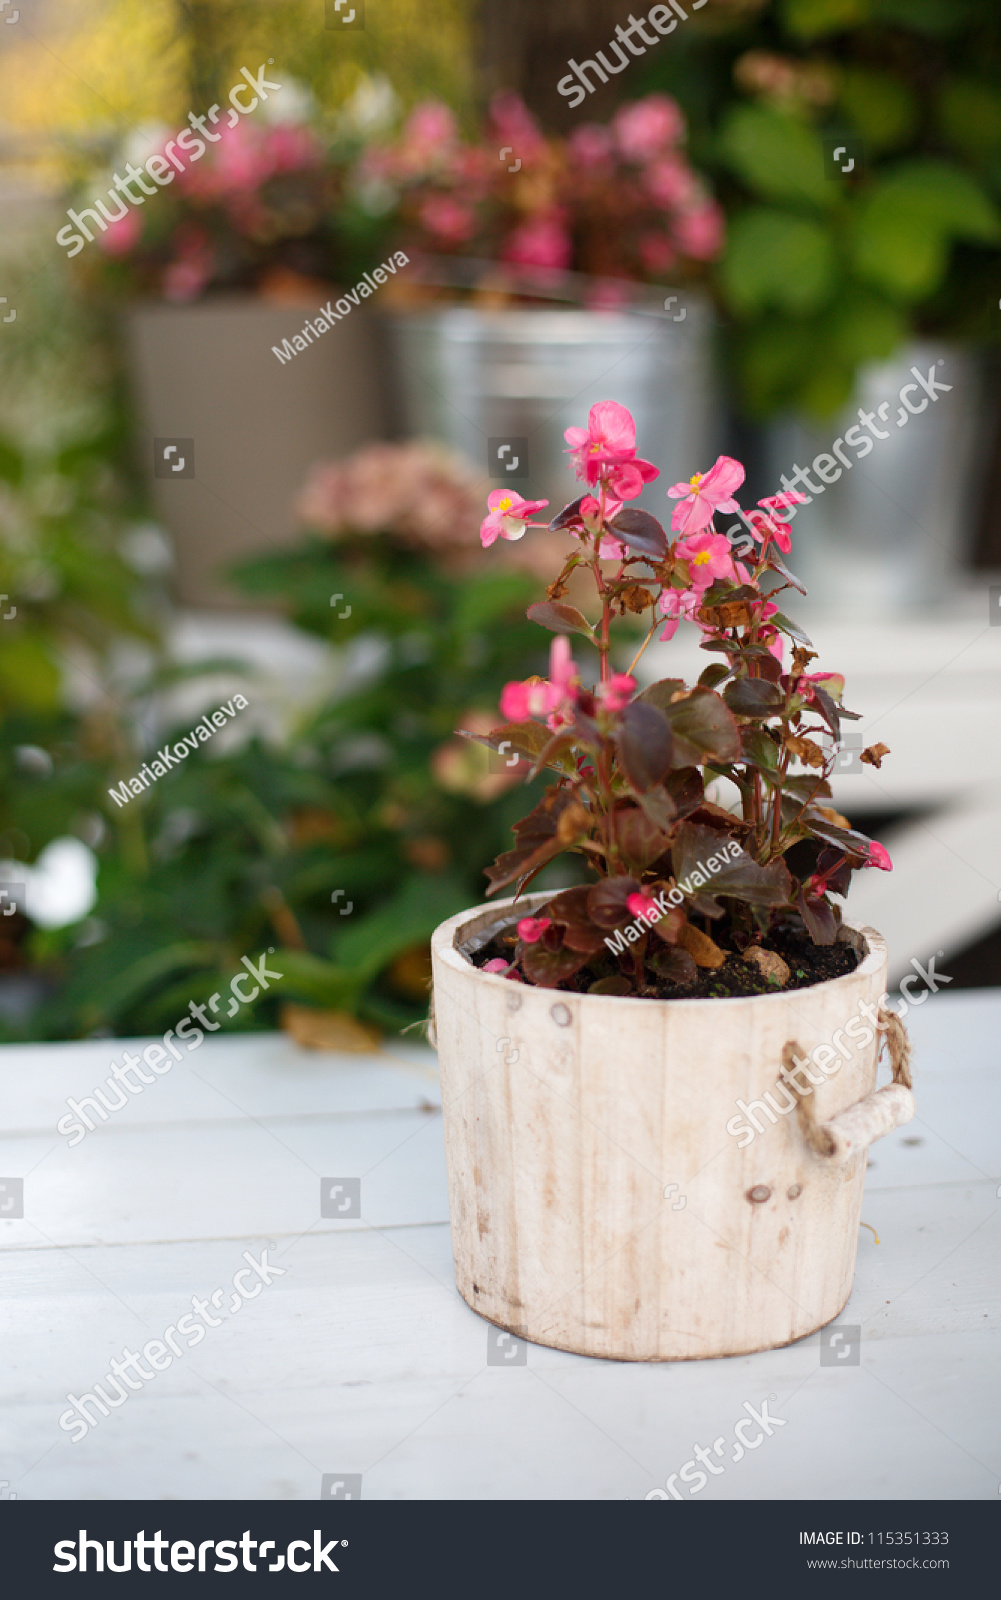 Decorated Christmas Fireplace On A Brick Wall Stock Photo Image Pink Flowers Wooden Bucket Outdoors Stock Photo 115351333